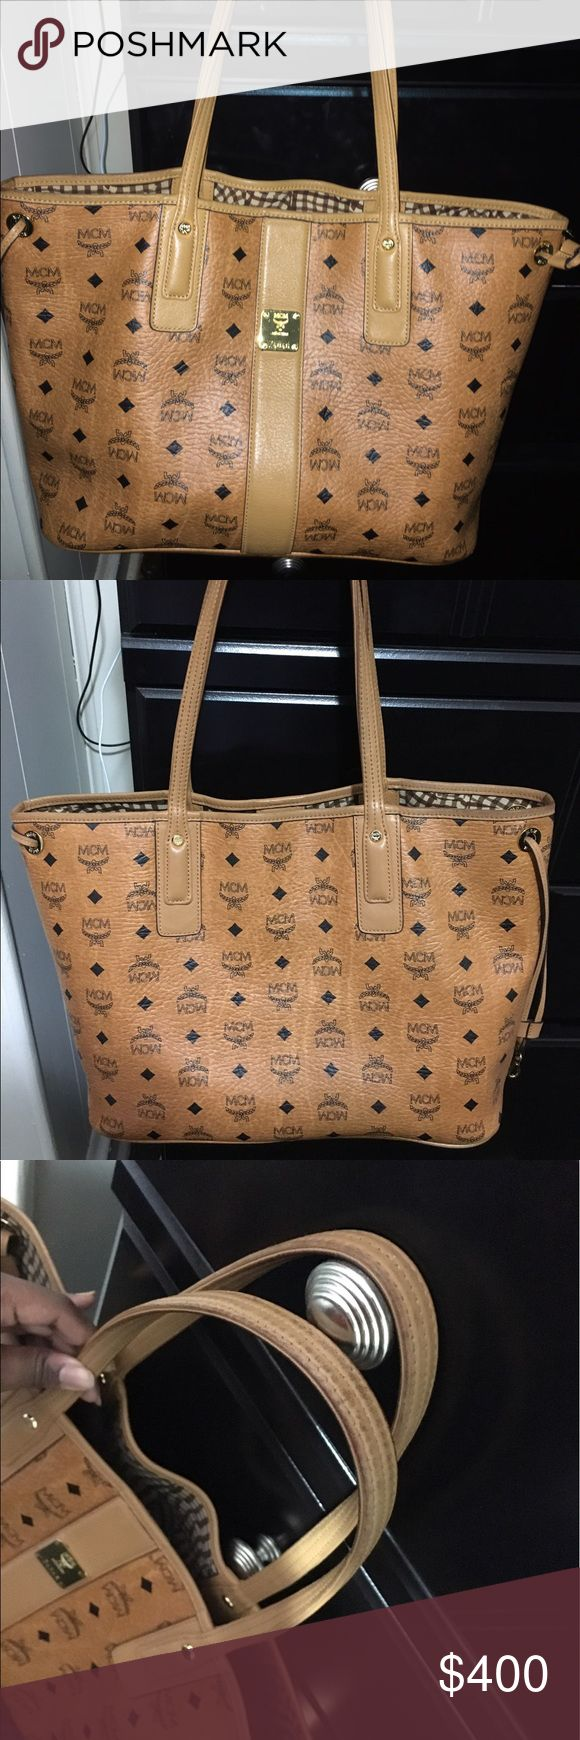 Authentic MCM bag! Clutch & duffle bag included! MCM Bags Totes